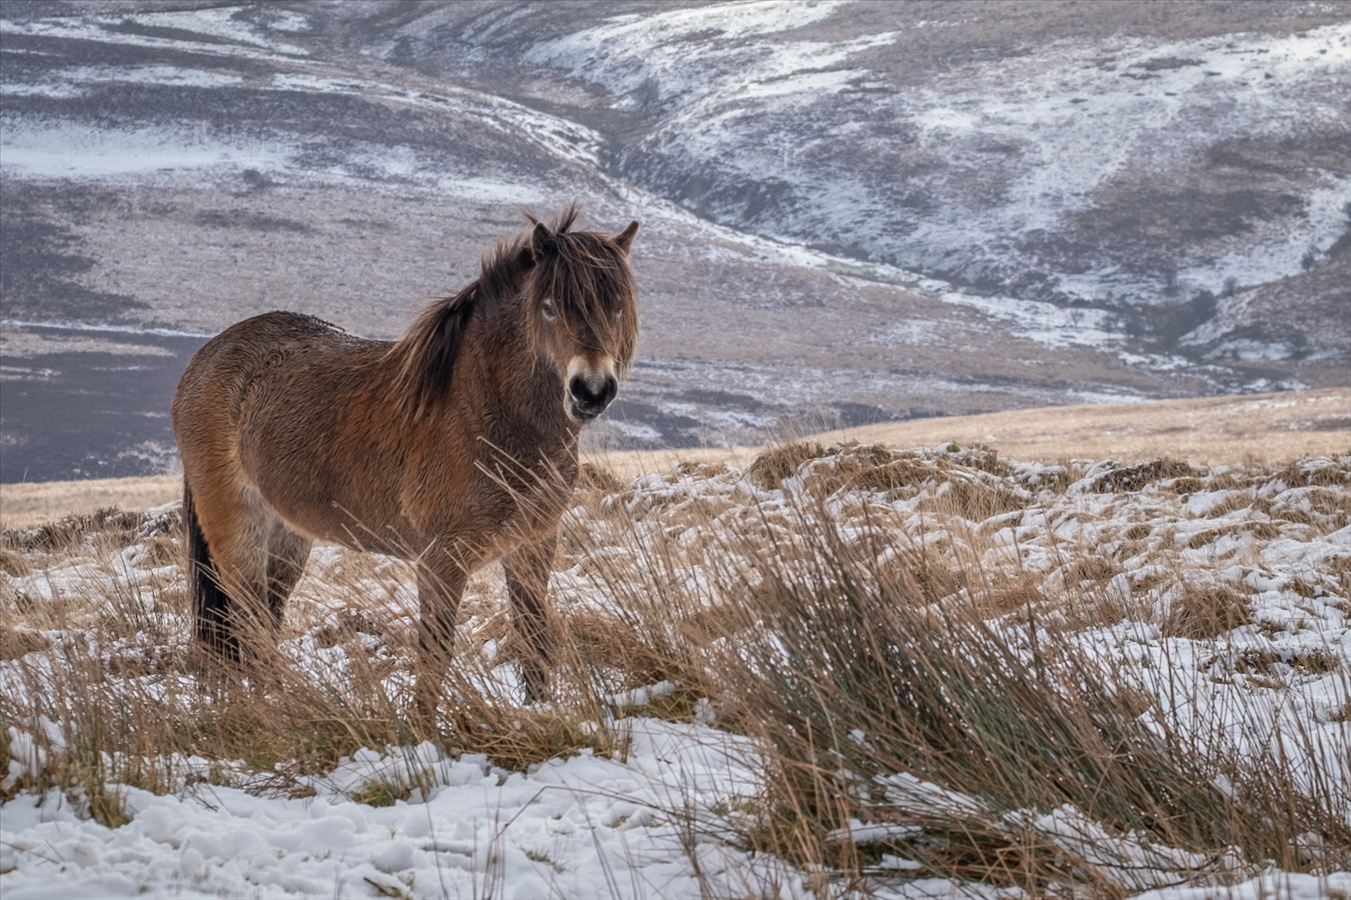 Commended: Pony On Snowy Exmoor - Vicky Dyson